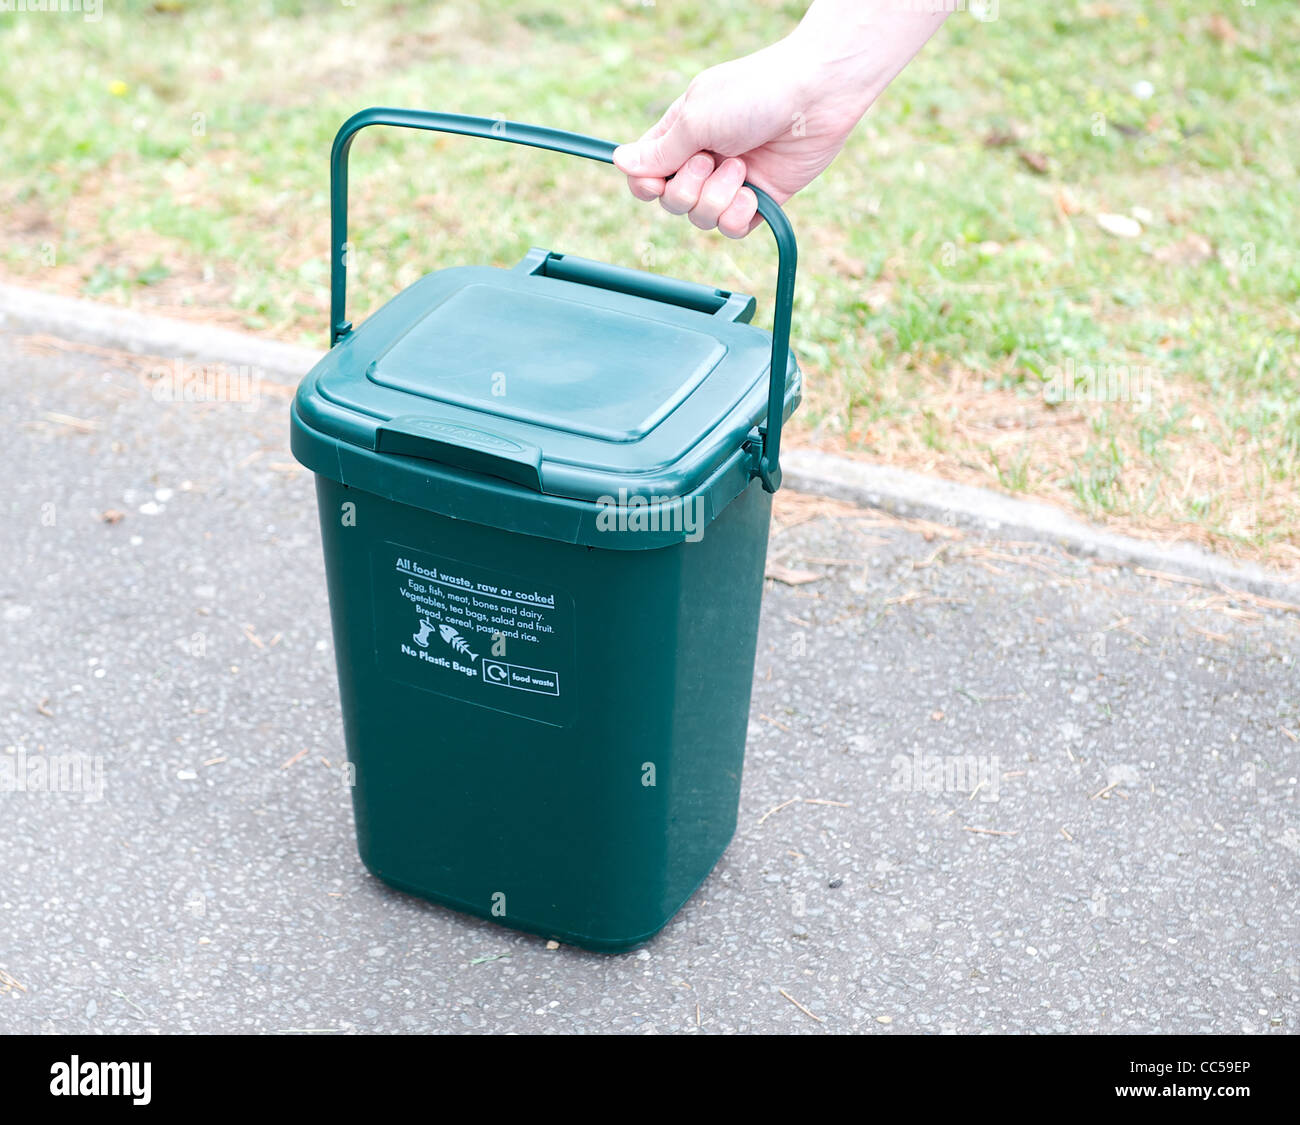 Composting Food Bin Stock Photos & Composting Food Bin Stock Images ...